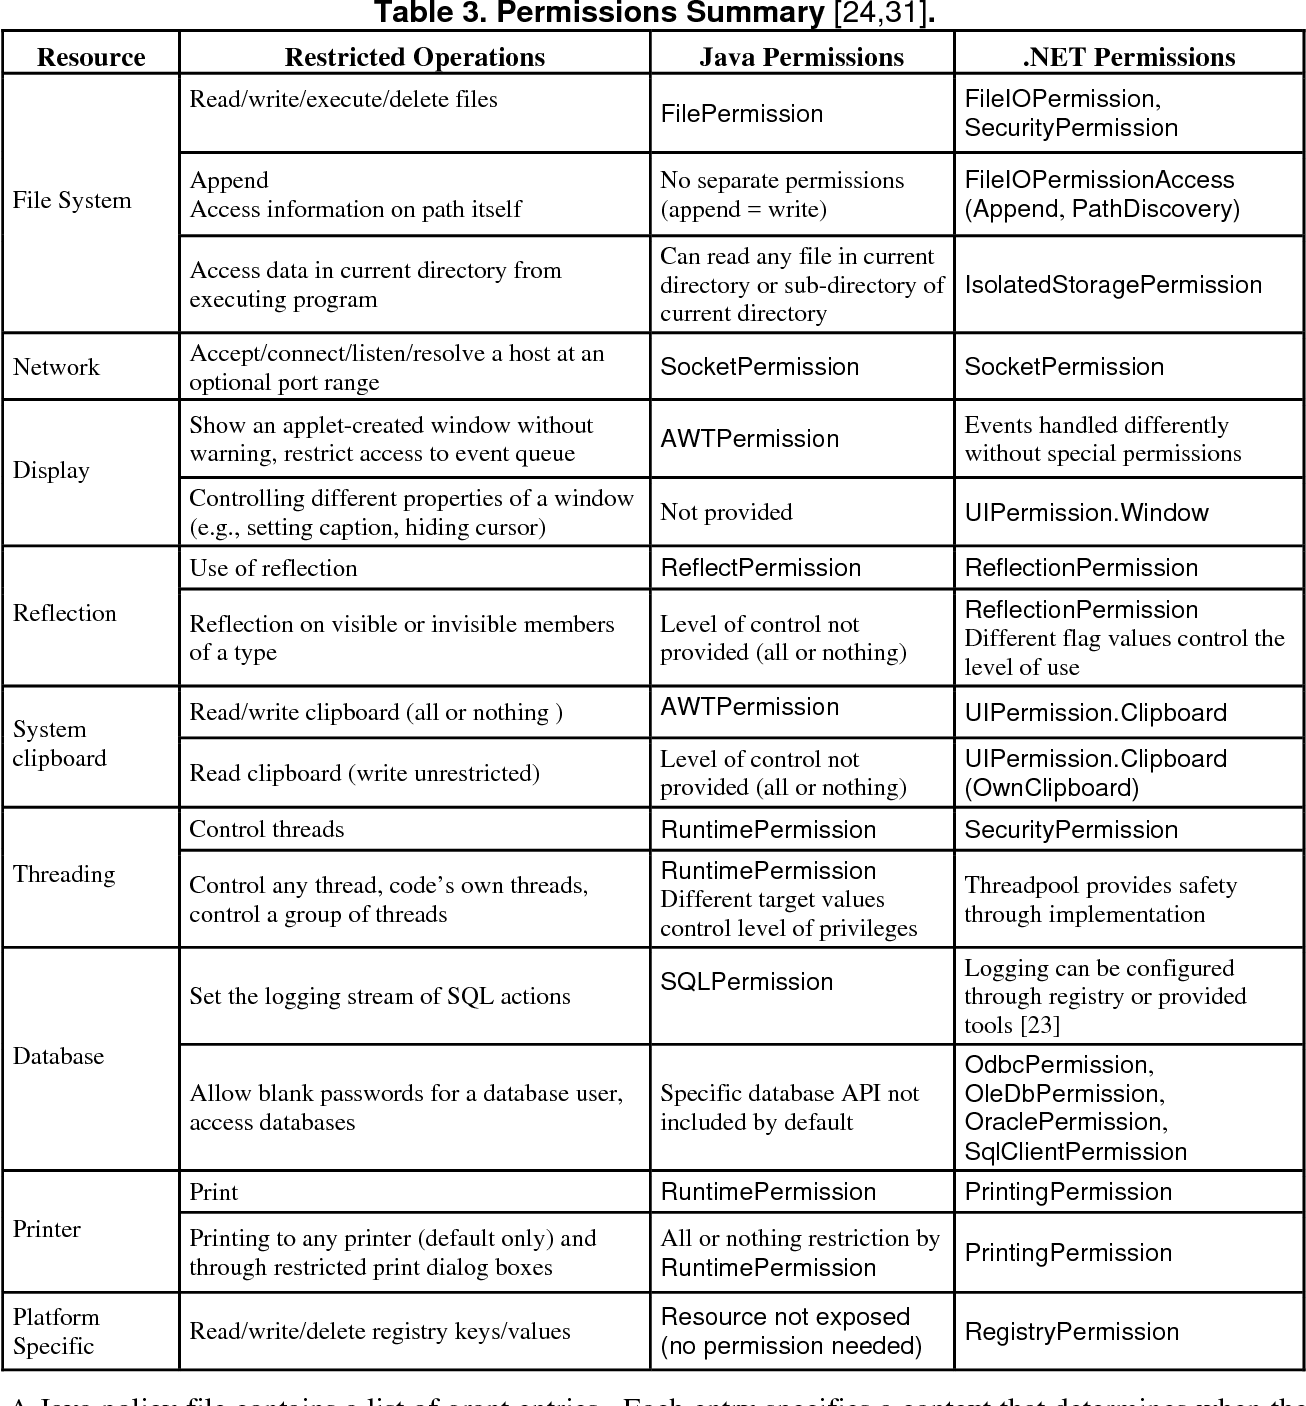 Table 3 from Comparing Java and  NET security: Lessons